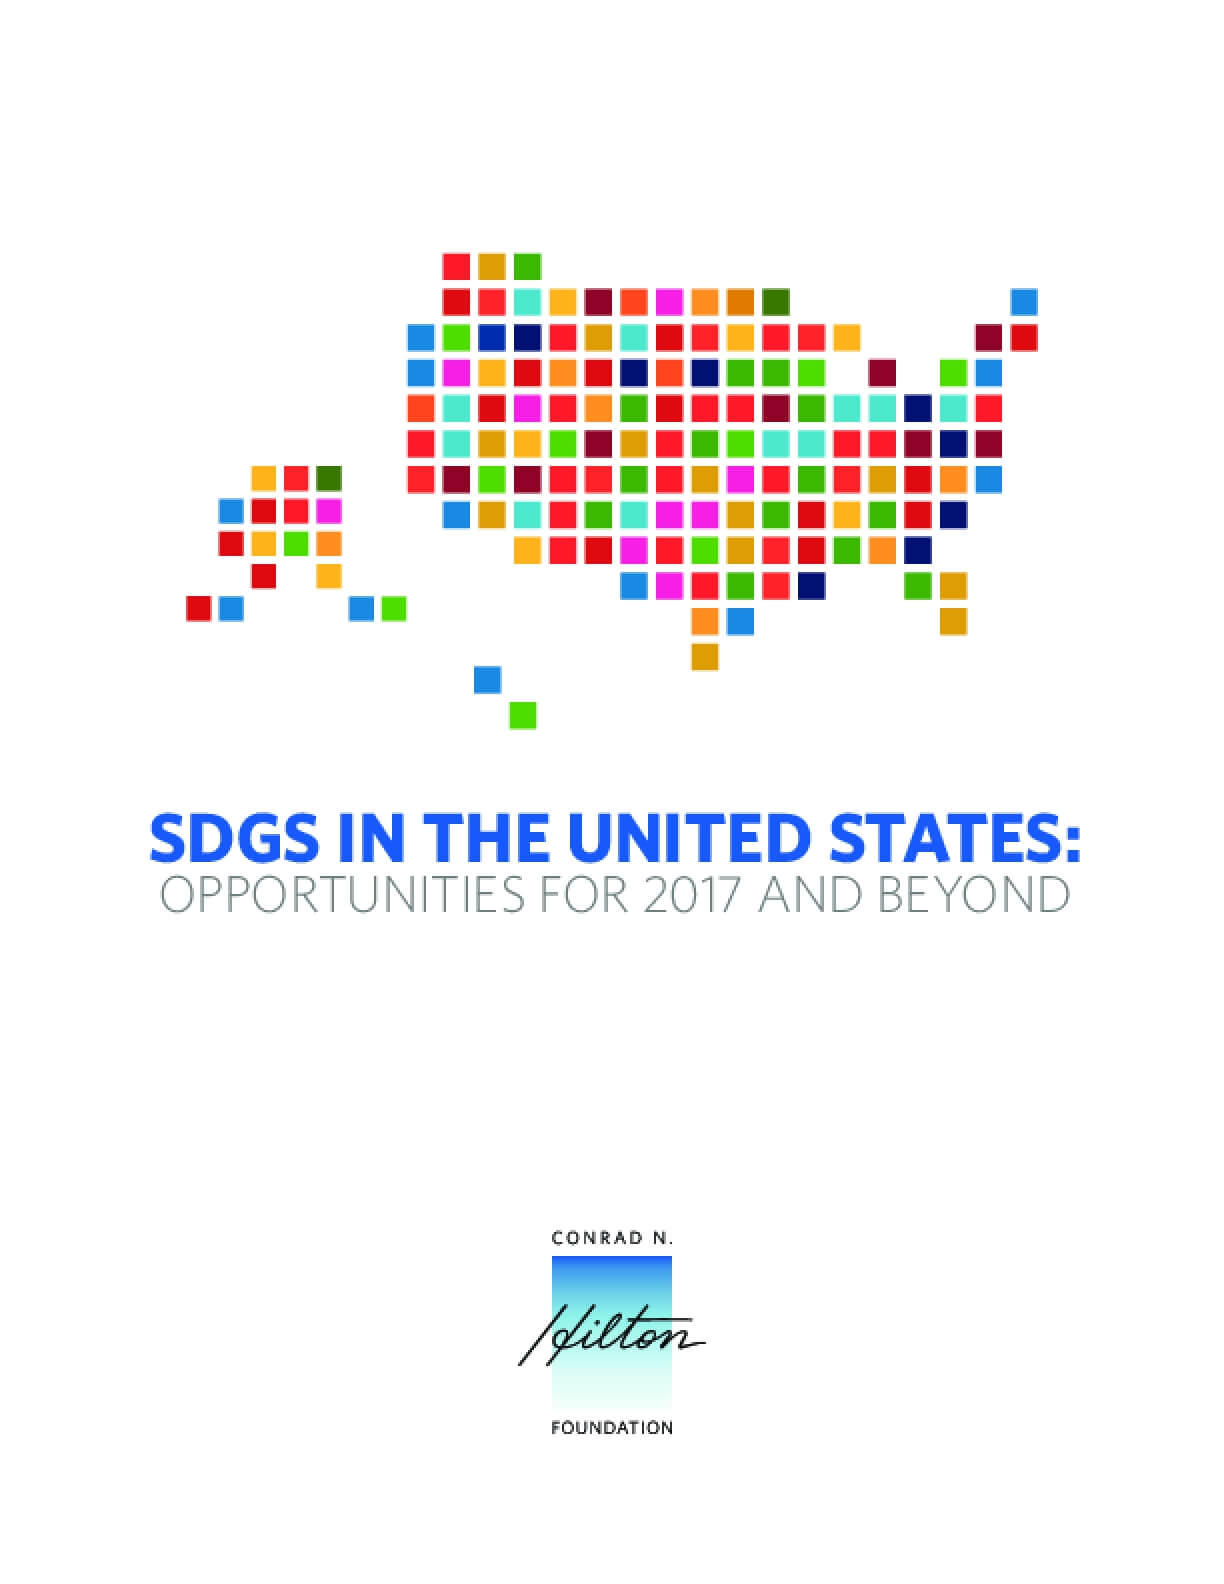 SDGs in the United States: Opportunities for 2017 and Beyond